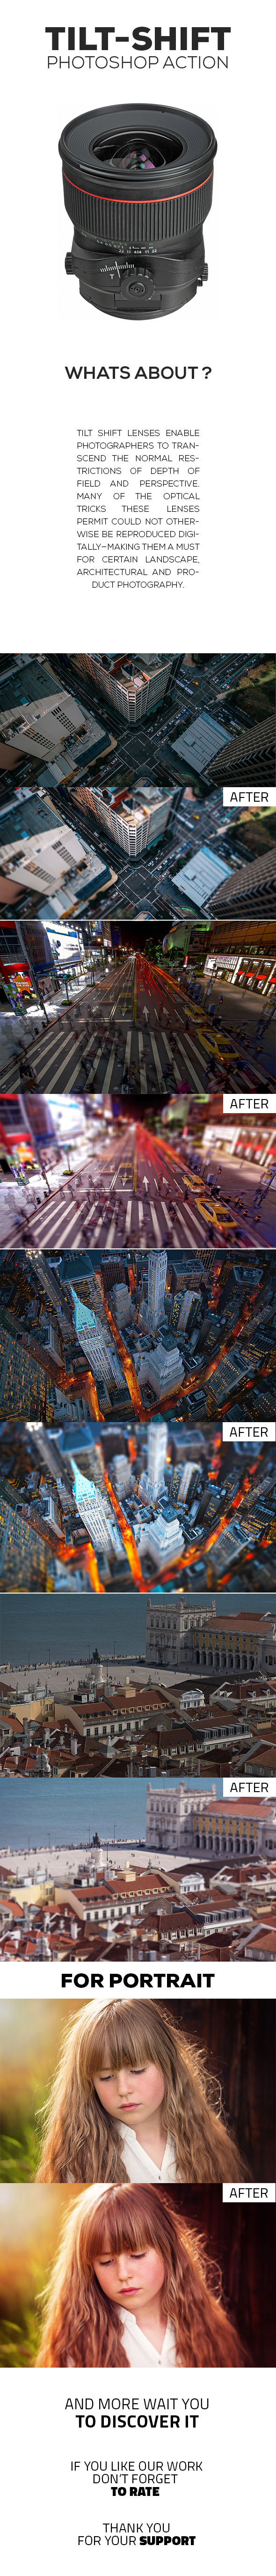 Pro Reflex Tilt-Shift Photoshop Action - Photo Effects Actions